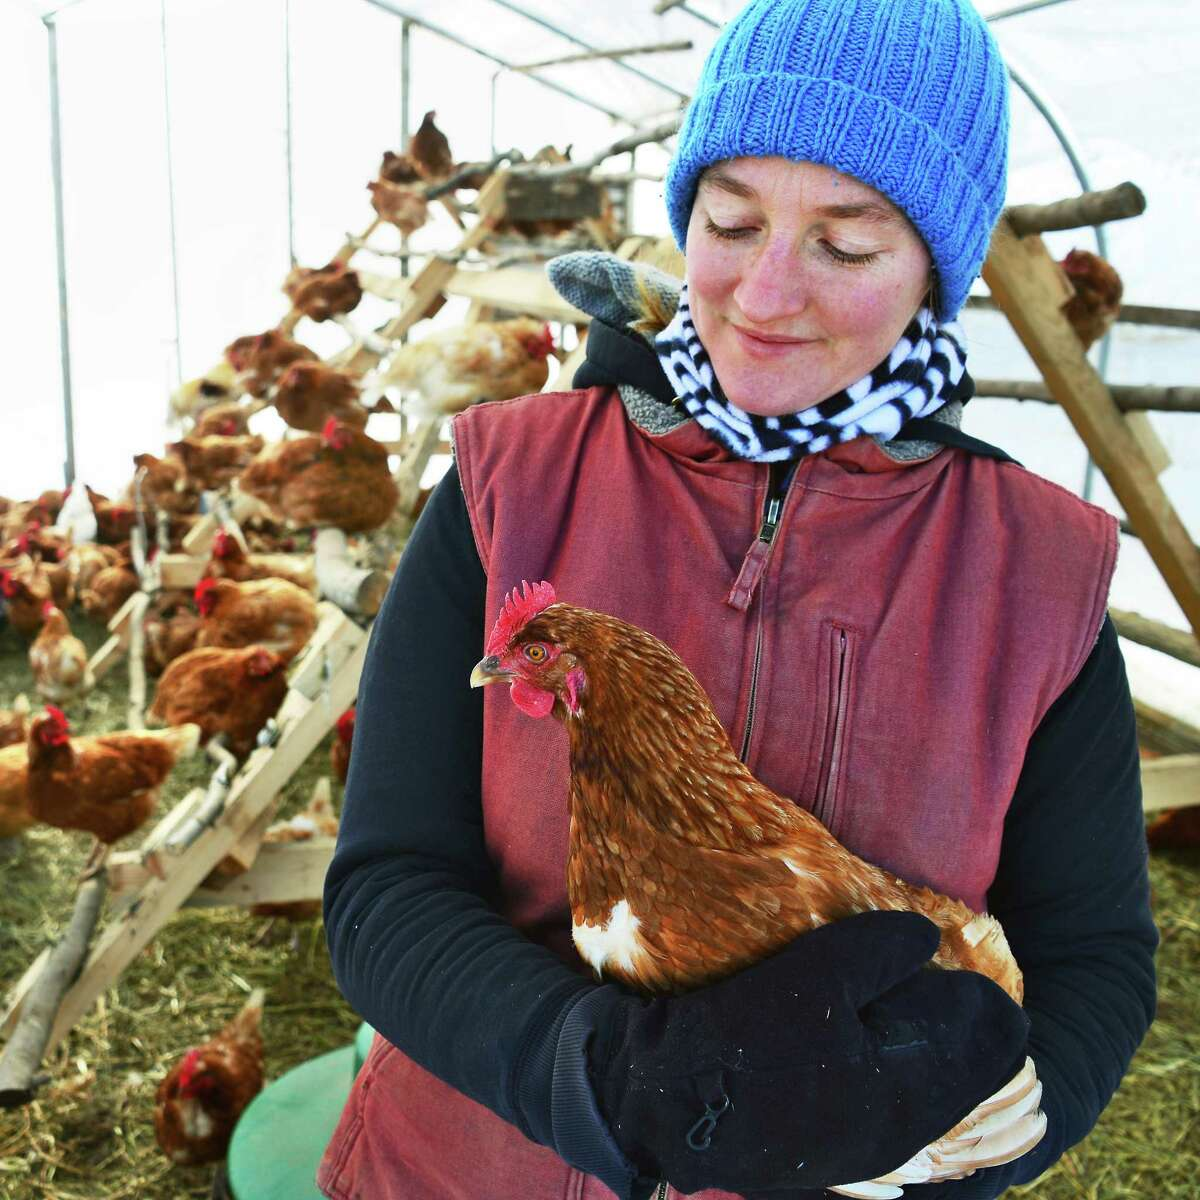 Annie Metzger with one of the chickens on her Laughing Earth Farm Thursday Dec. 14, 2017 in Cropseyville, NY. (John Carl D'Annibale / Times Union)